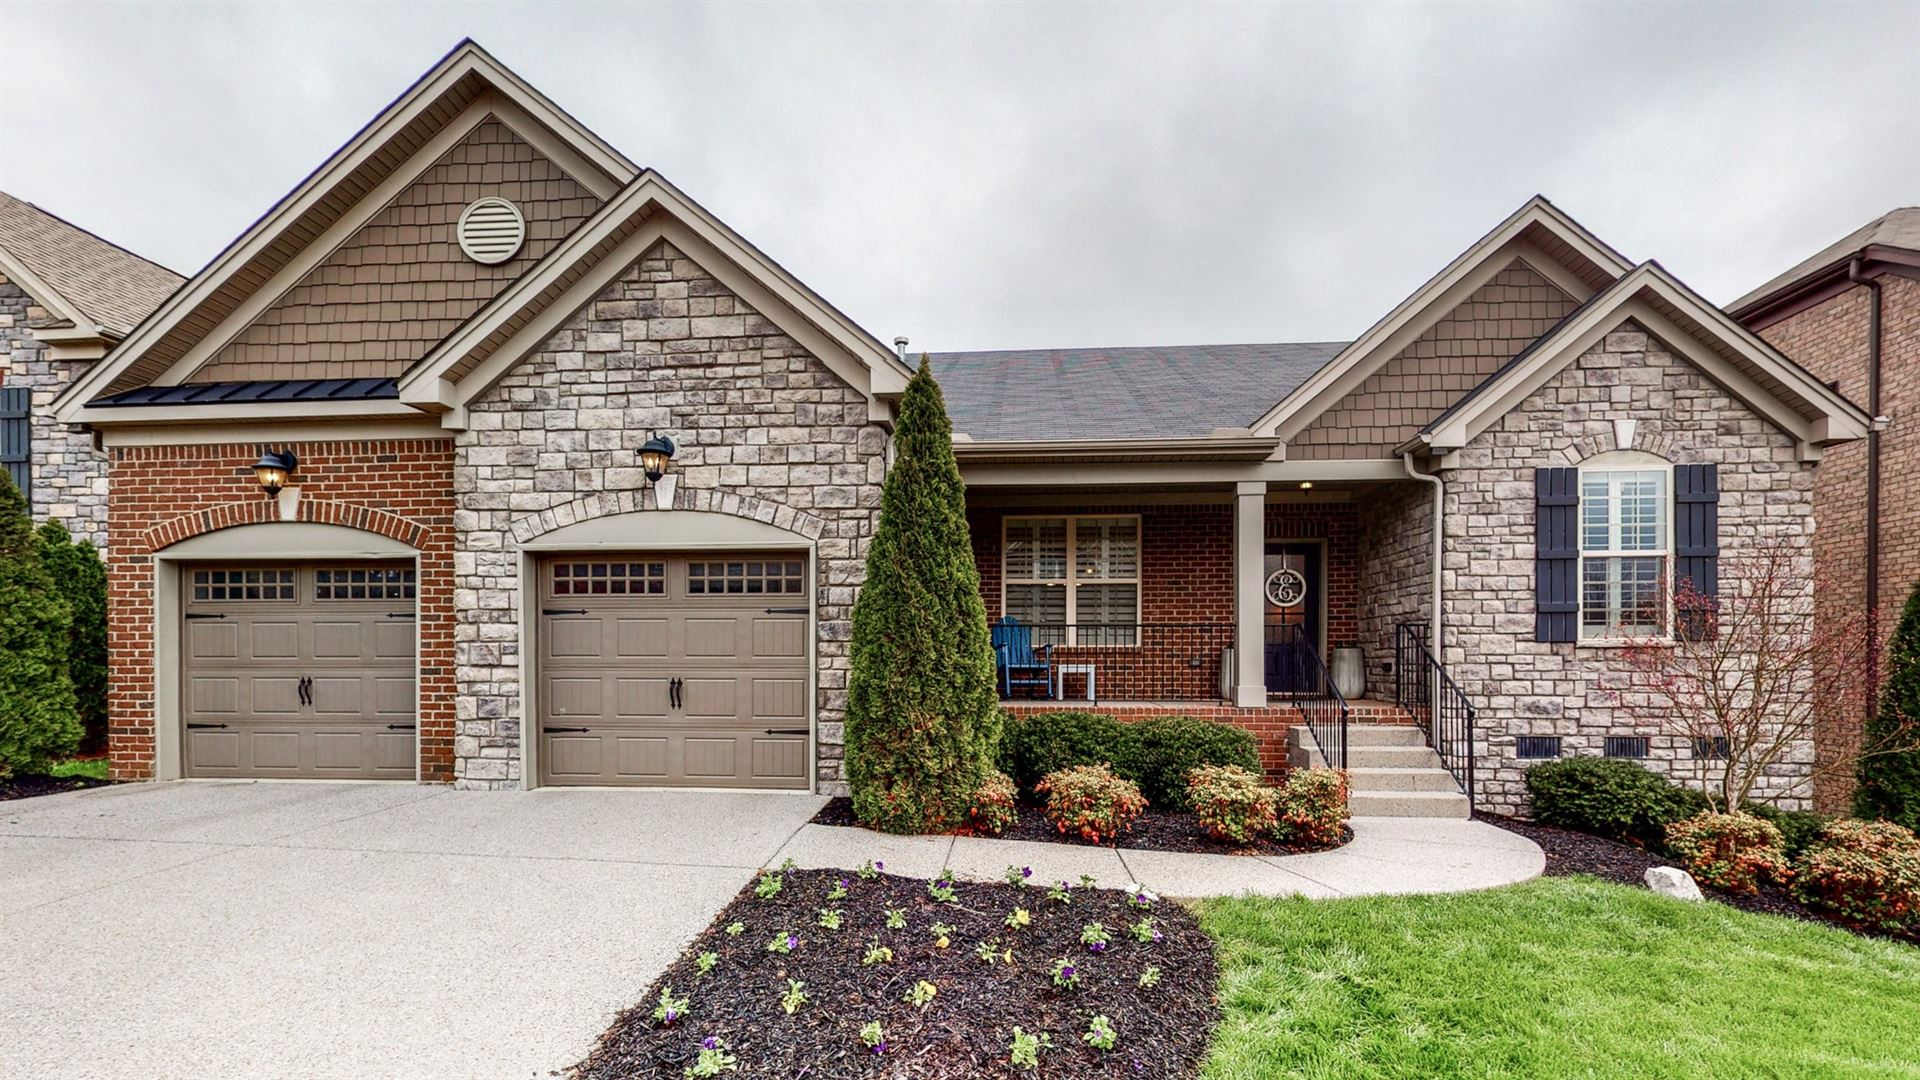 Photo of 213 Foxley Ct, Nolensville, TN 37135 (MLS # 2135898)